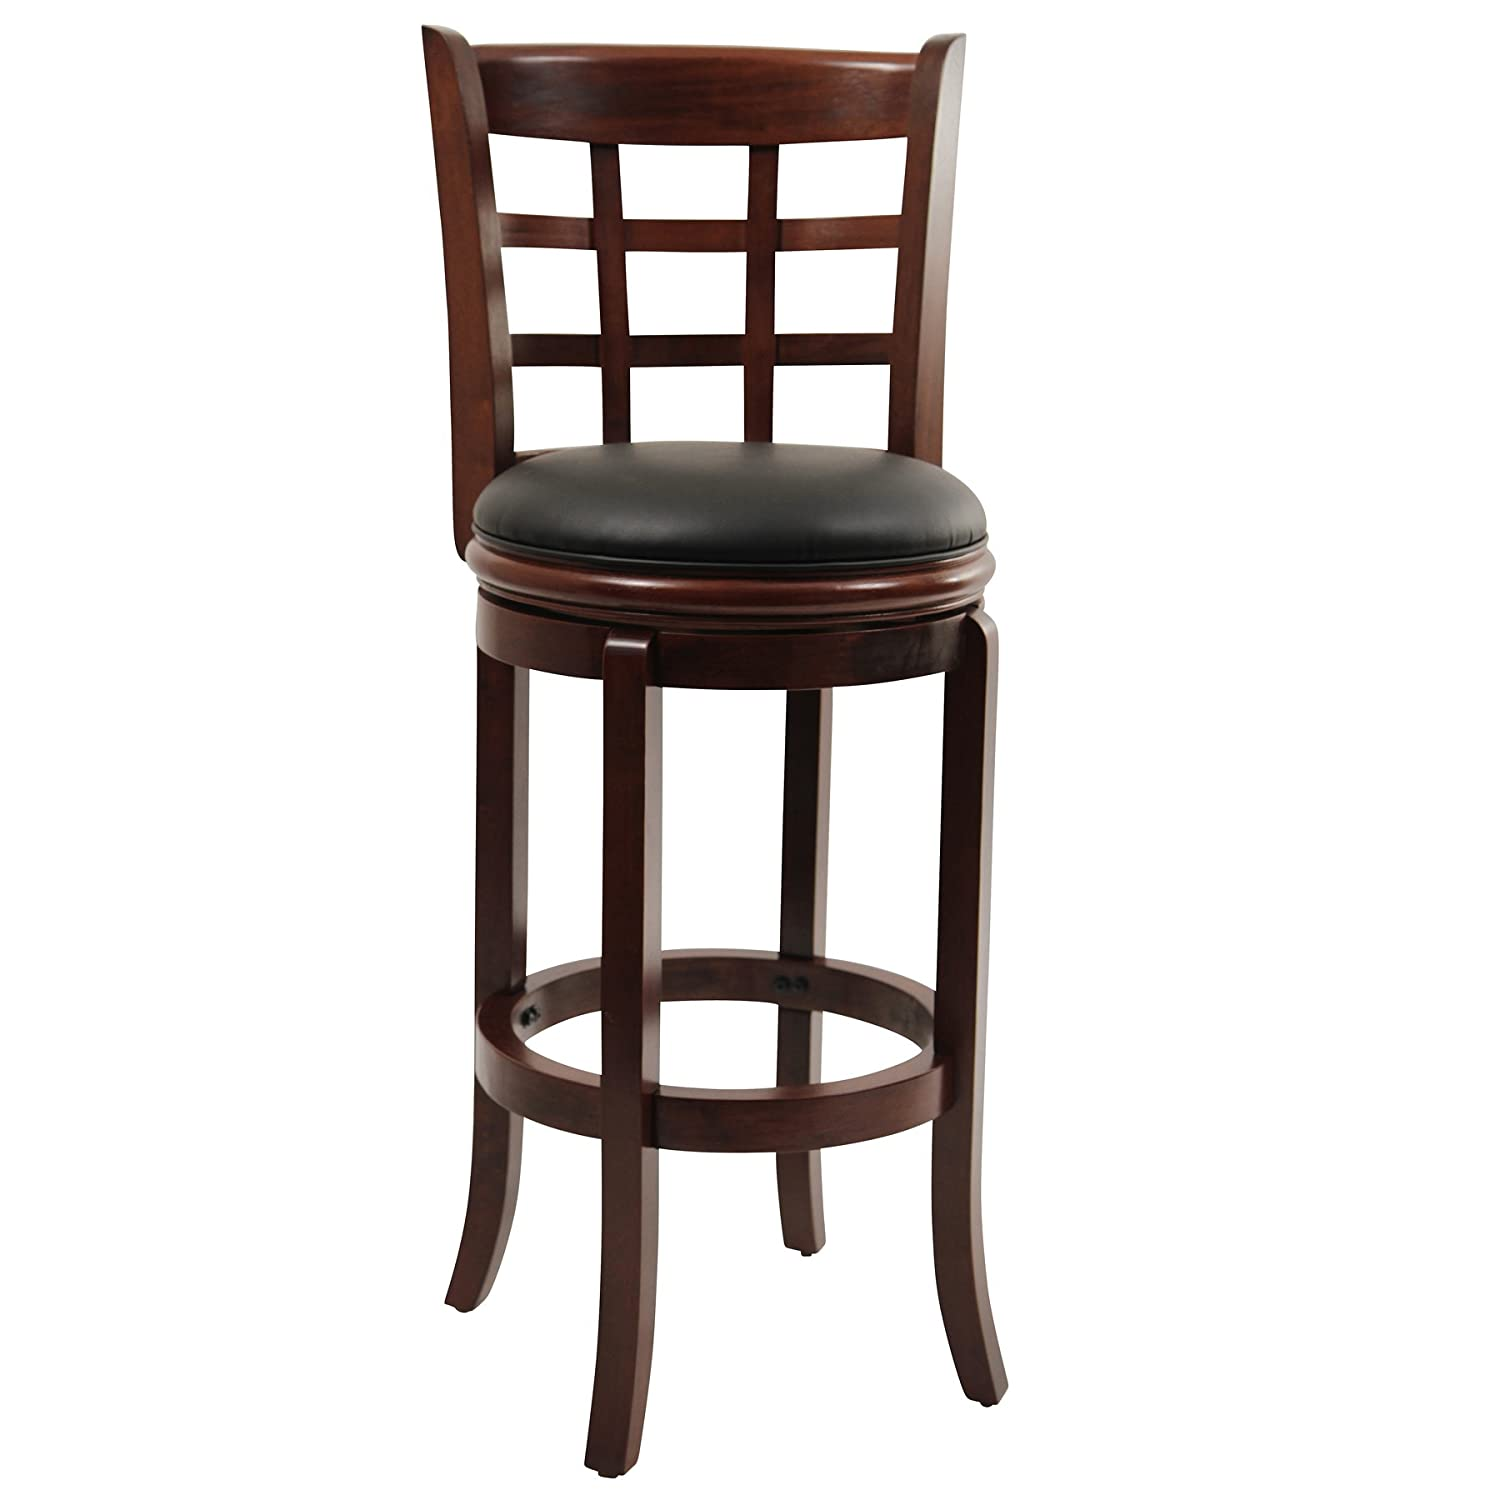 Amazon.com Boraam 41229 Kyoto Bar Height Swivel Stool 29-Inch Cherry Kitchen u0026 Dining  sc 1 st  Amazon.com : swivel stools - islam-shia.org